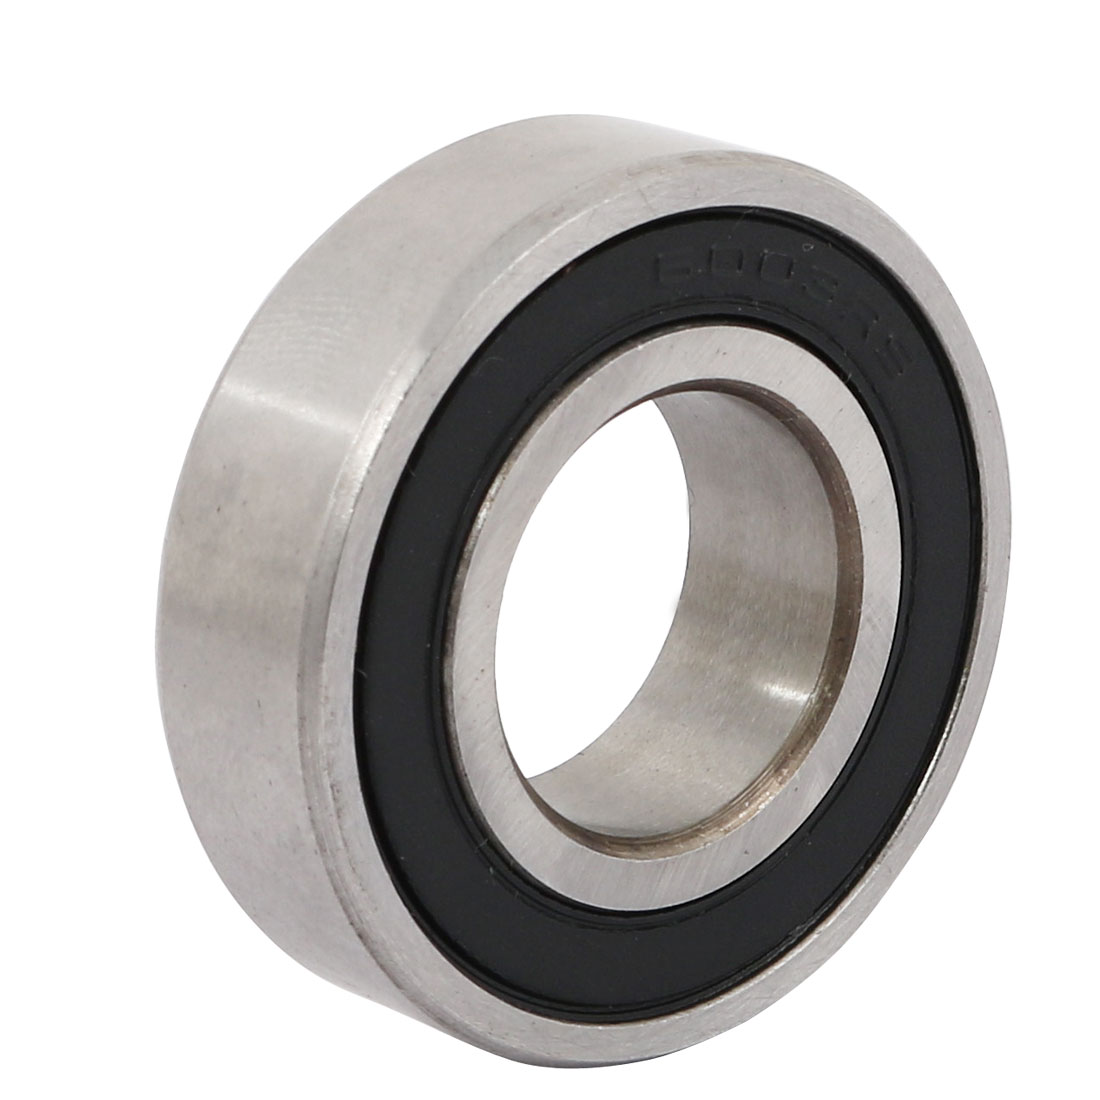 Replacement 6003RZ Roller-Skating Deep Groove Ball Bearing 35x17x10mm